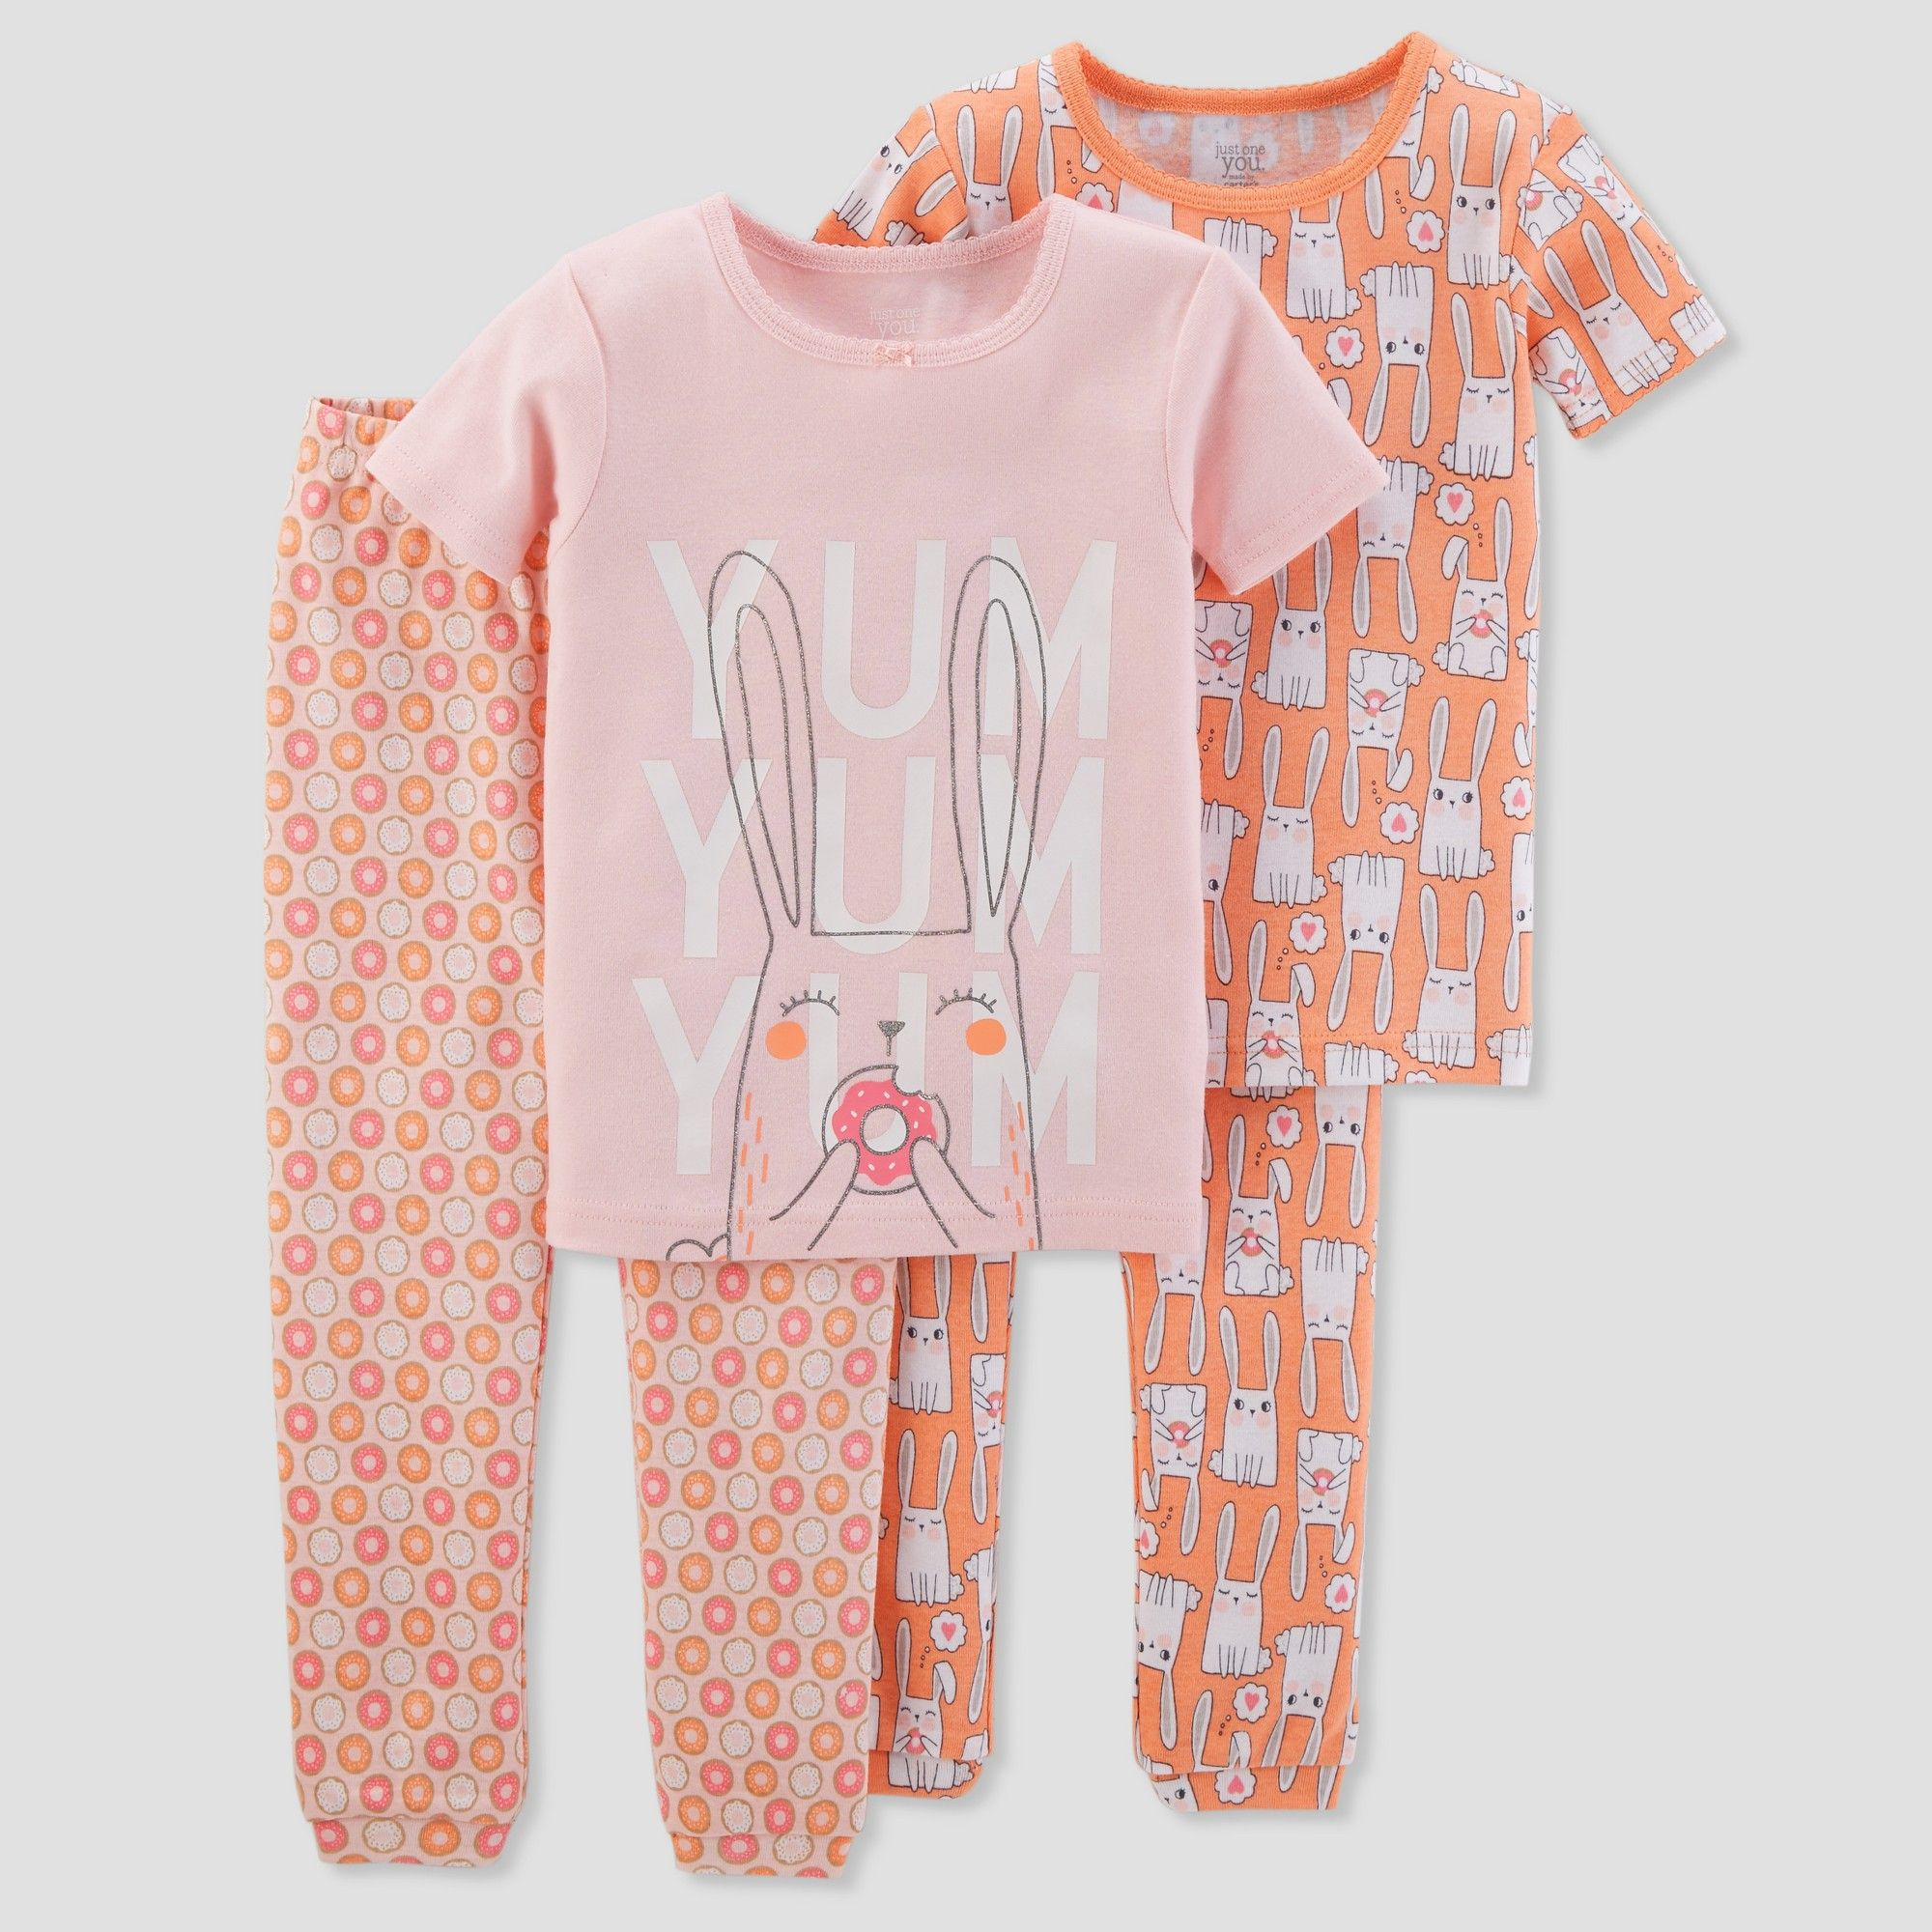 39968ce10668 Toddler Girls  4pc Cotton Bunnies Pajama Set - Just One You made by carter s  Peach 3T